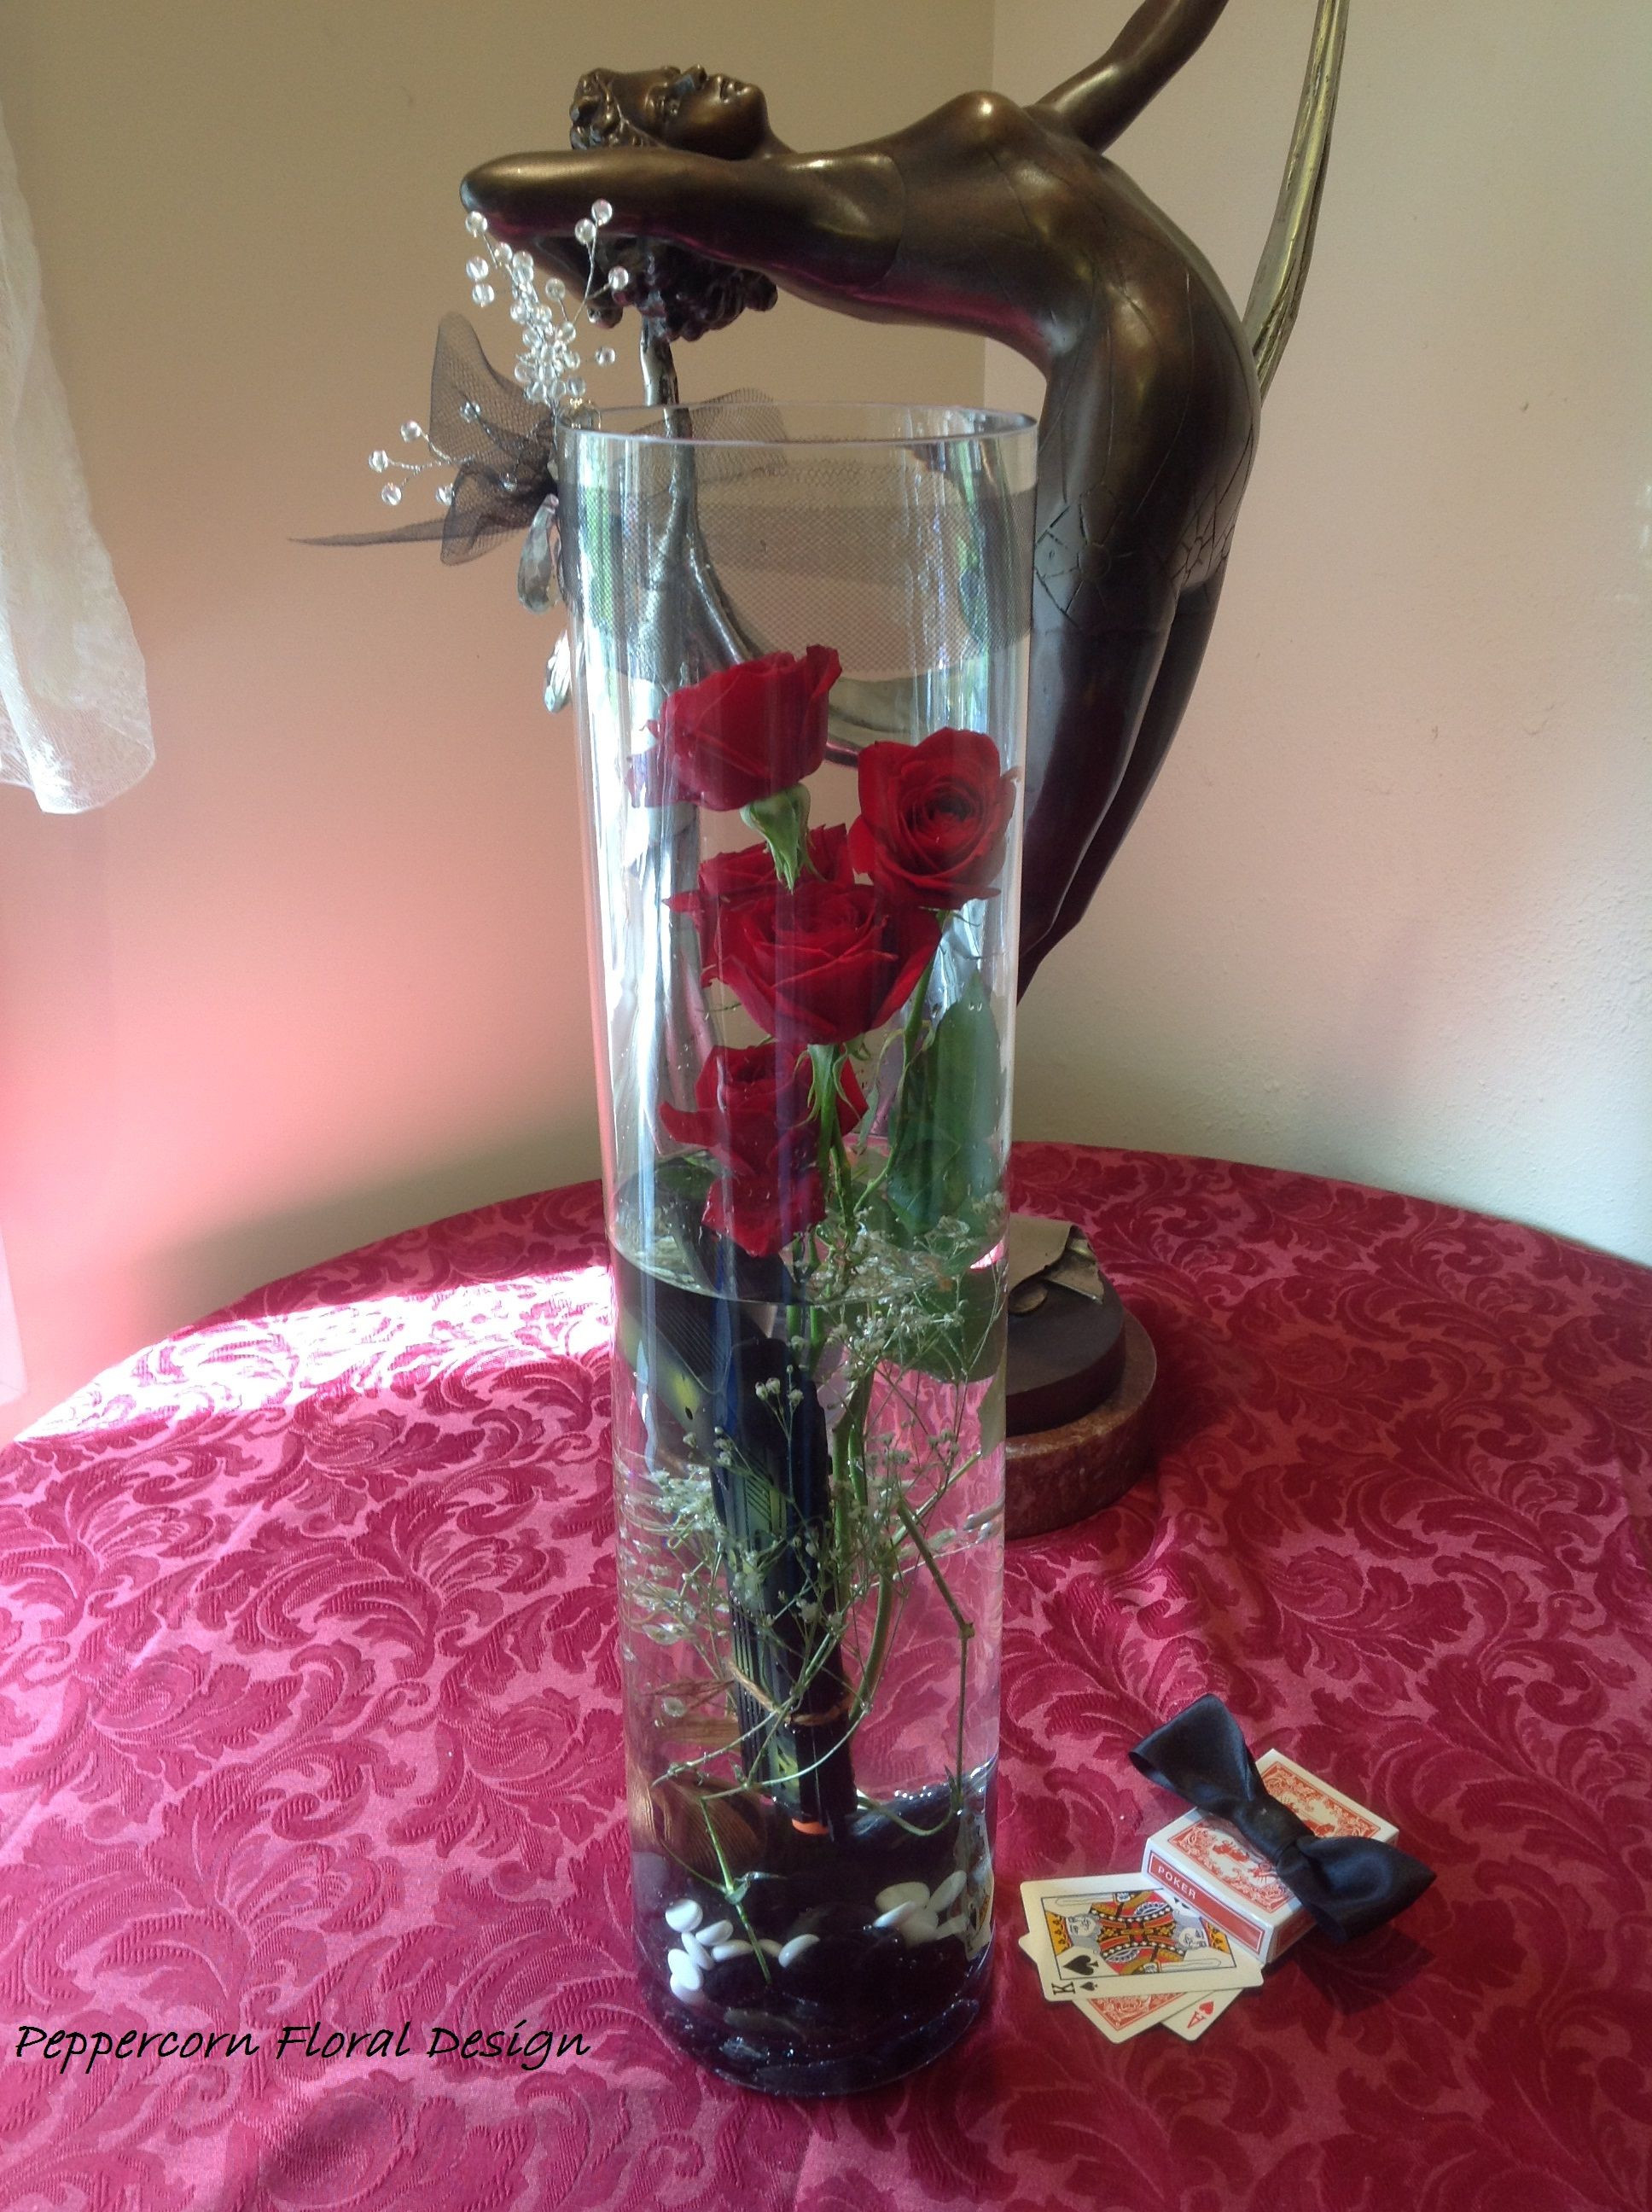 Red Glass Flower Vase Of Art Deco Lady Bronze Statue with Glass Cylinder Vase Flower for Art Deco Lady Bronze Statue with Glass Cylinder Vase Flower Arrangement for Red Black and White Gangster theme Murder Mystery Party Add Cards and Bow Tie